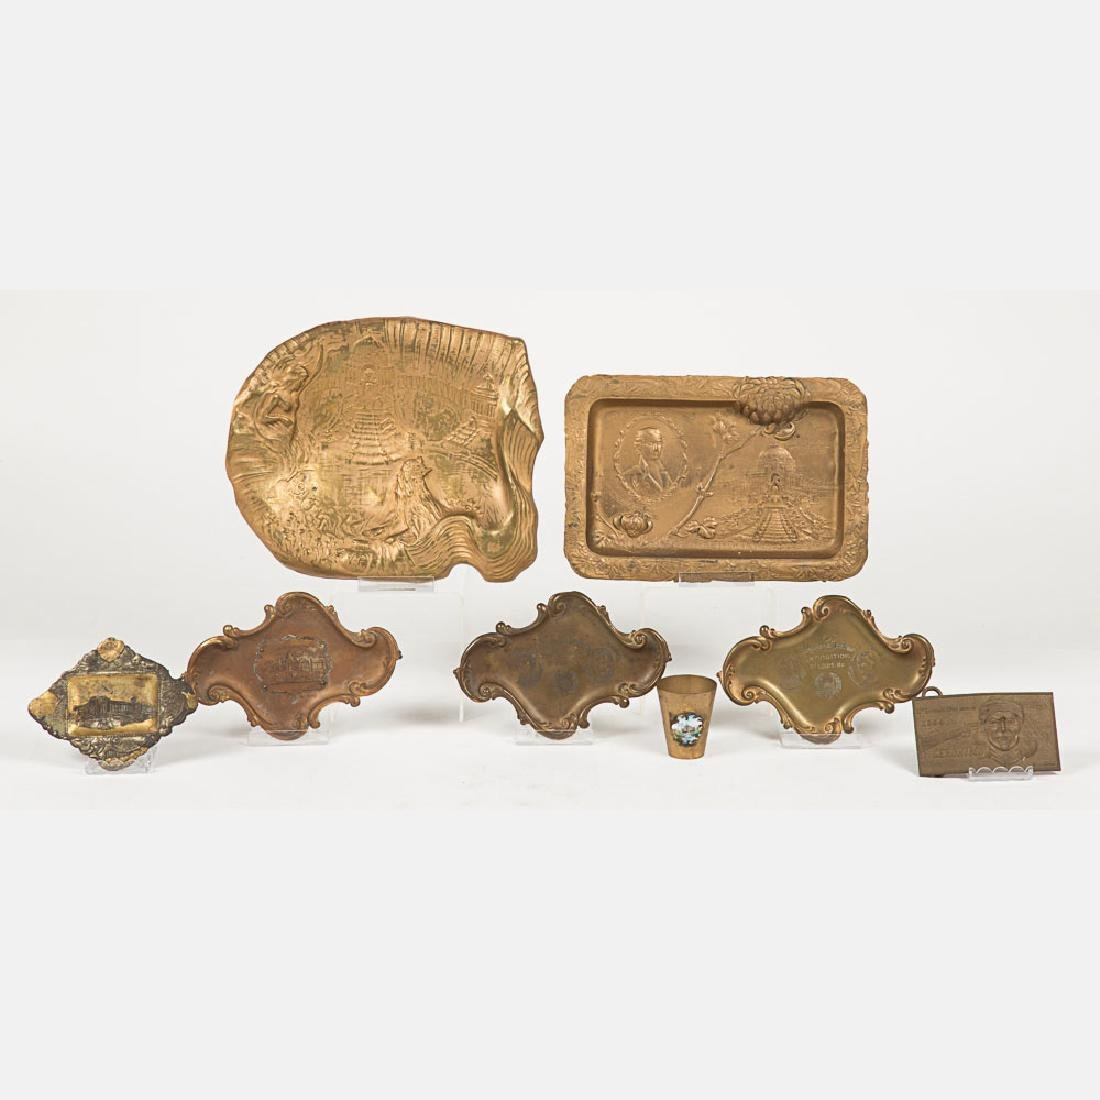 A Group of Six Metal Souvenir Trays from the Louisiana